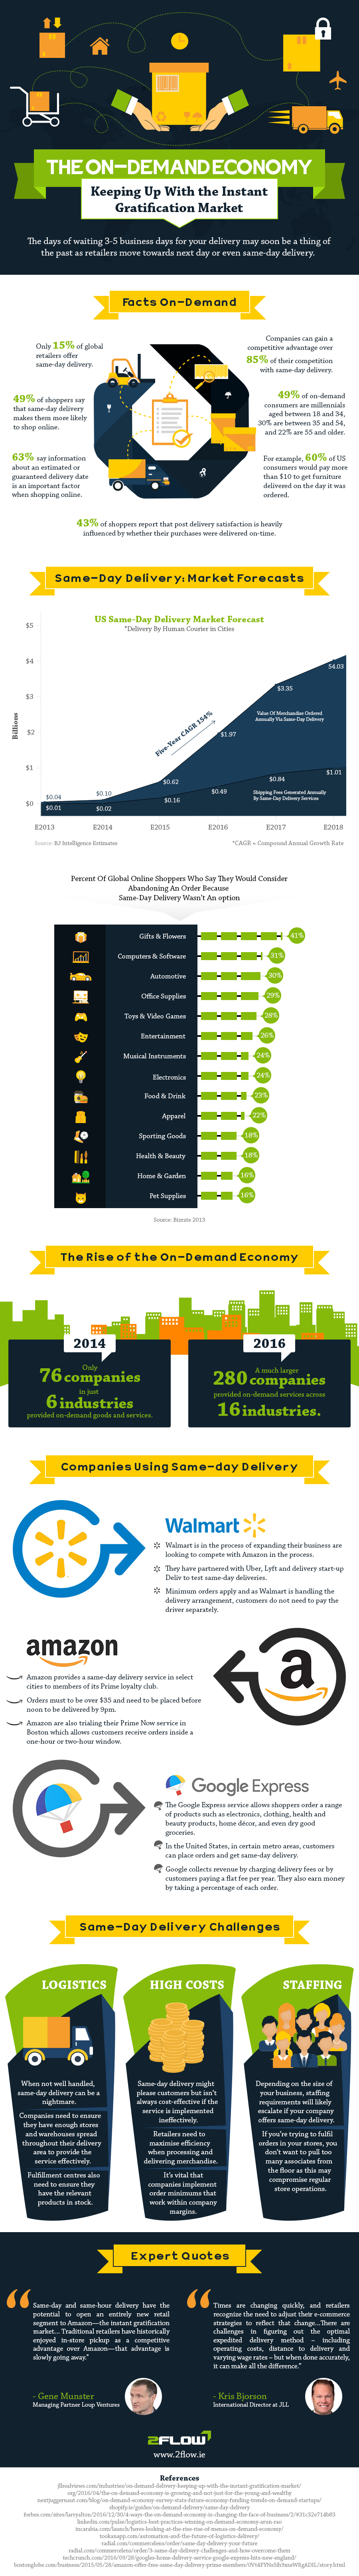 The Rise of Same-Day & Next Day Delivery Infographic